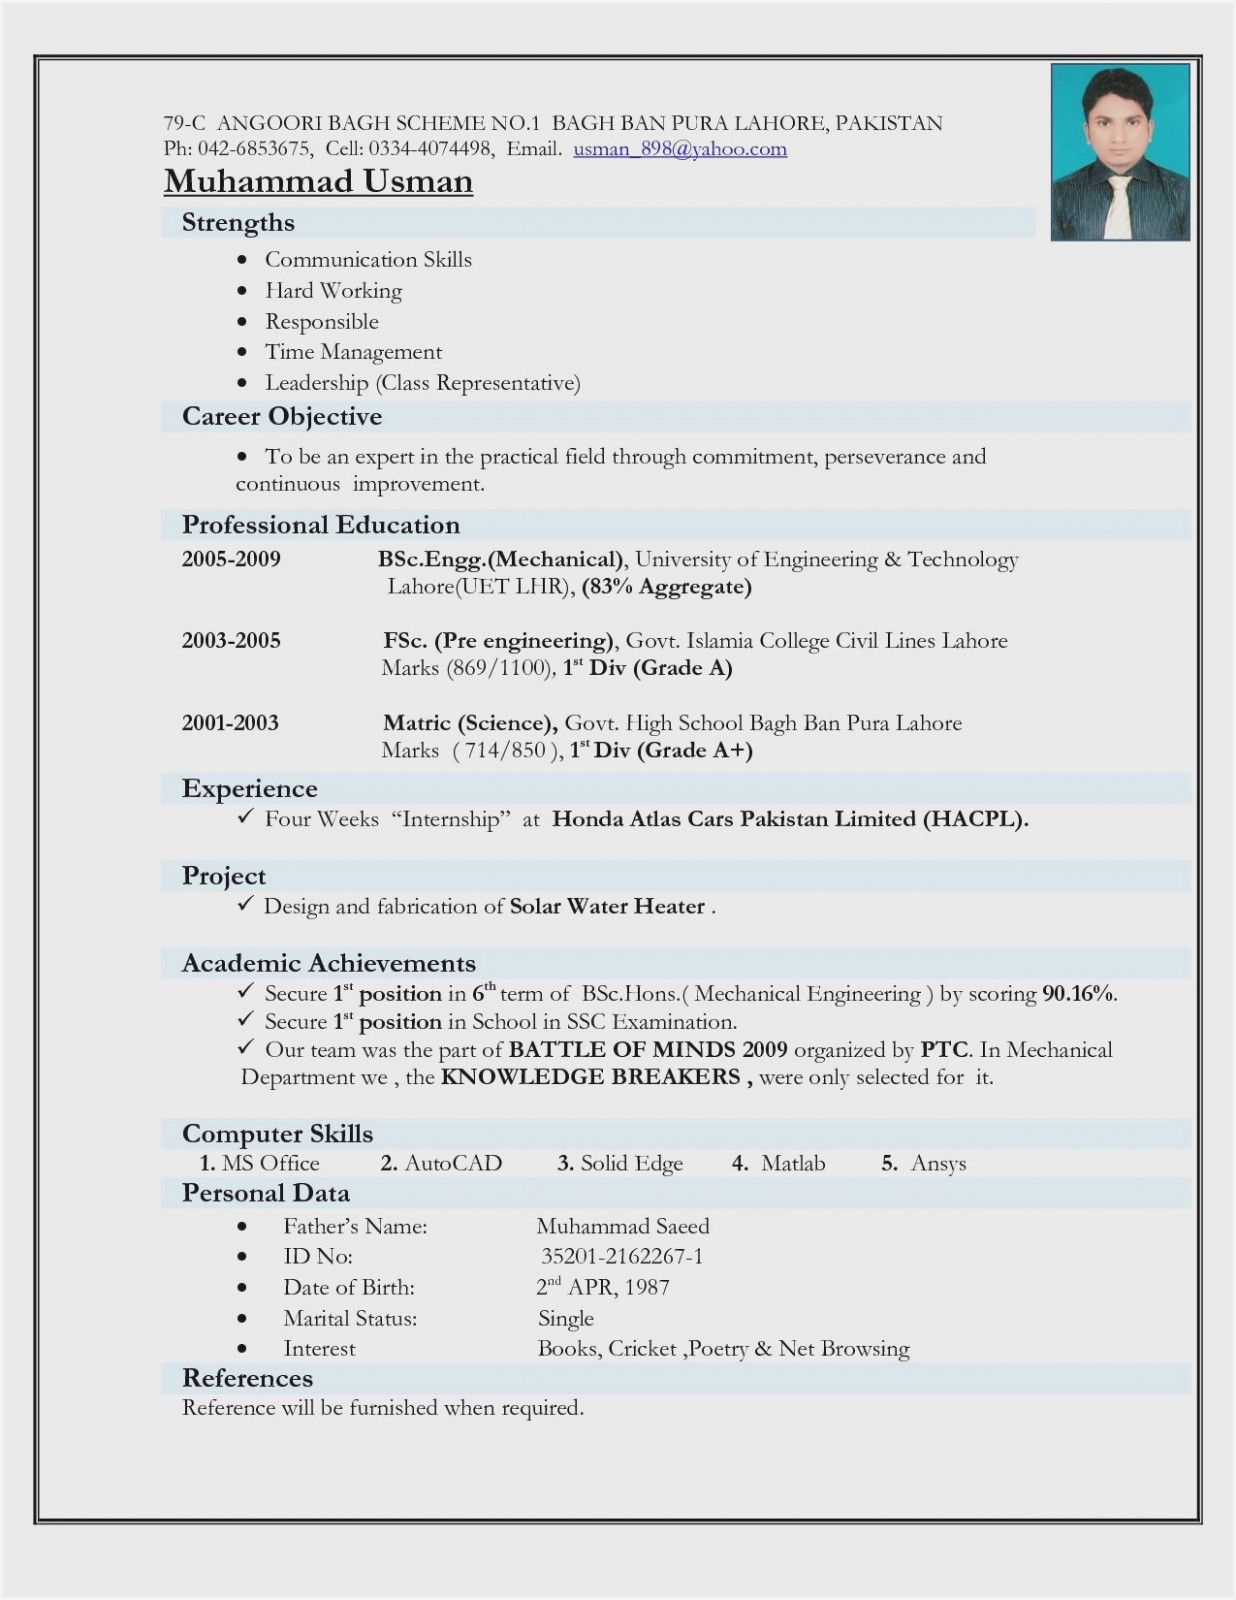 engineer resume template mechanical engineering format for freshers computer hardware and Resume Computer Hardware And Networking Engineer Resume